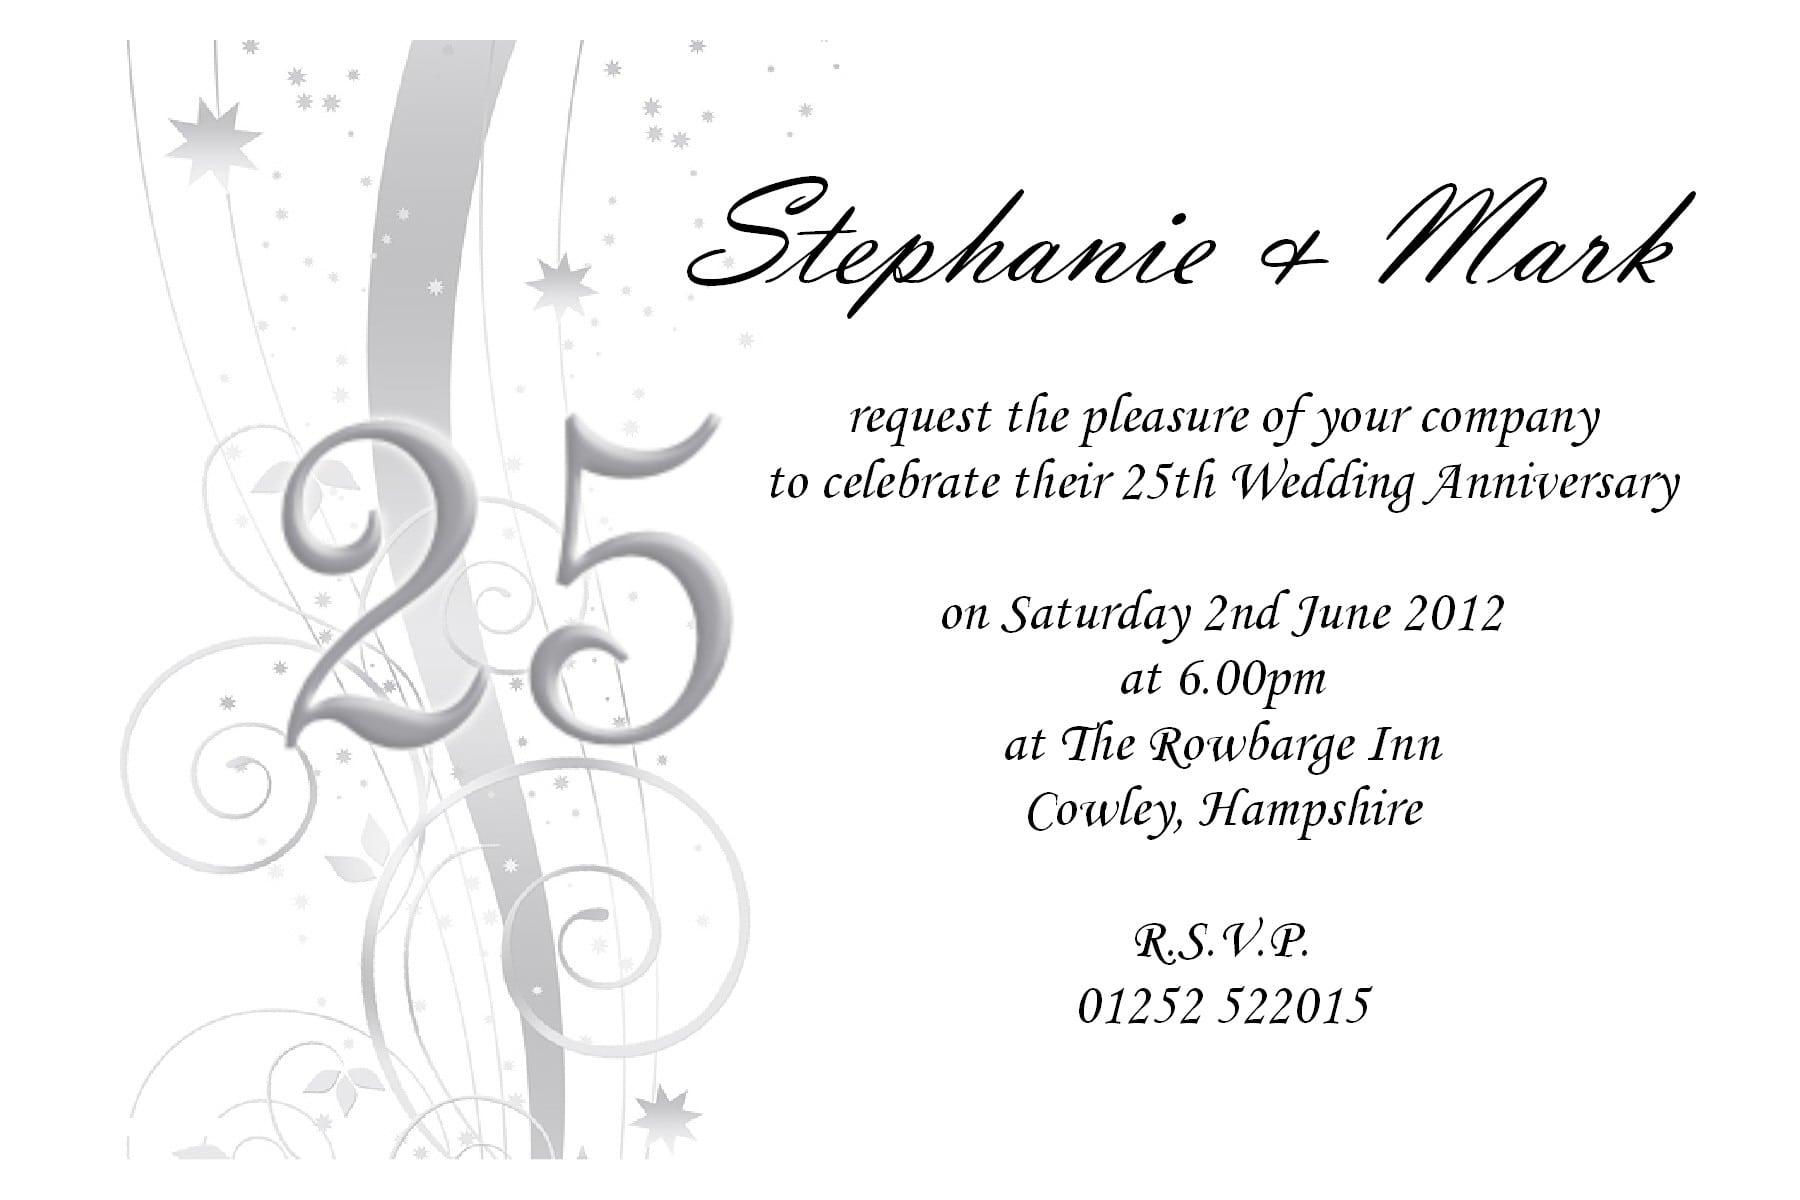 50th wedding anniversary invitations templates free 50th wedding anniversary invitations templates free 5 400 x 266 640 x 426 1800 x 1200 stopboris Choice Image